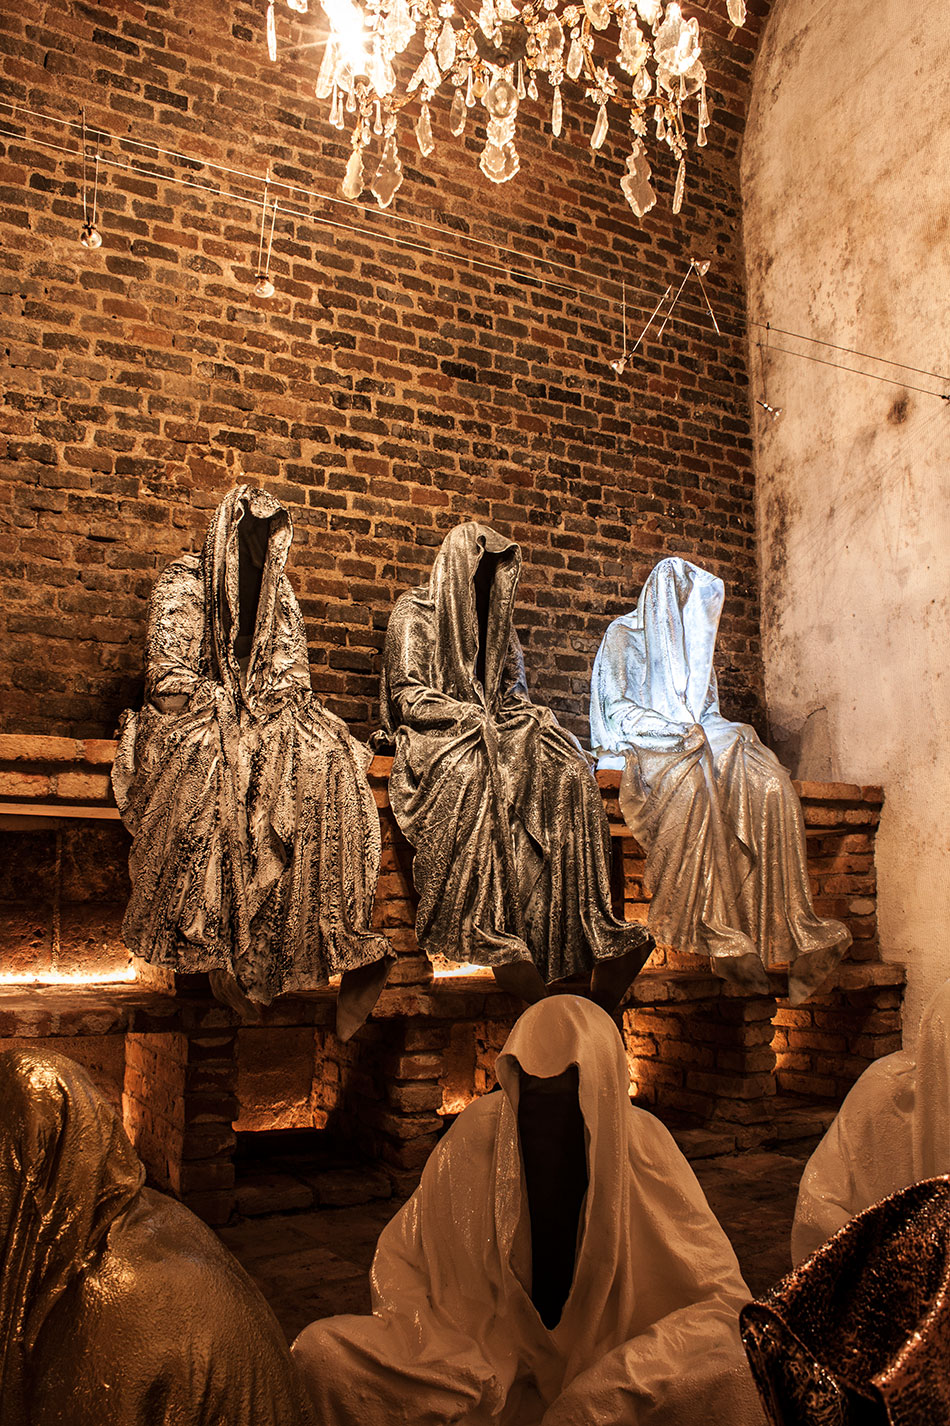 wine-cellar-galerie-artdealer--freller-guardians-of-time-manfred-kili-kielnhofer-contemporary-art-arts-light-design-sculpture-antique-show-statue-7905